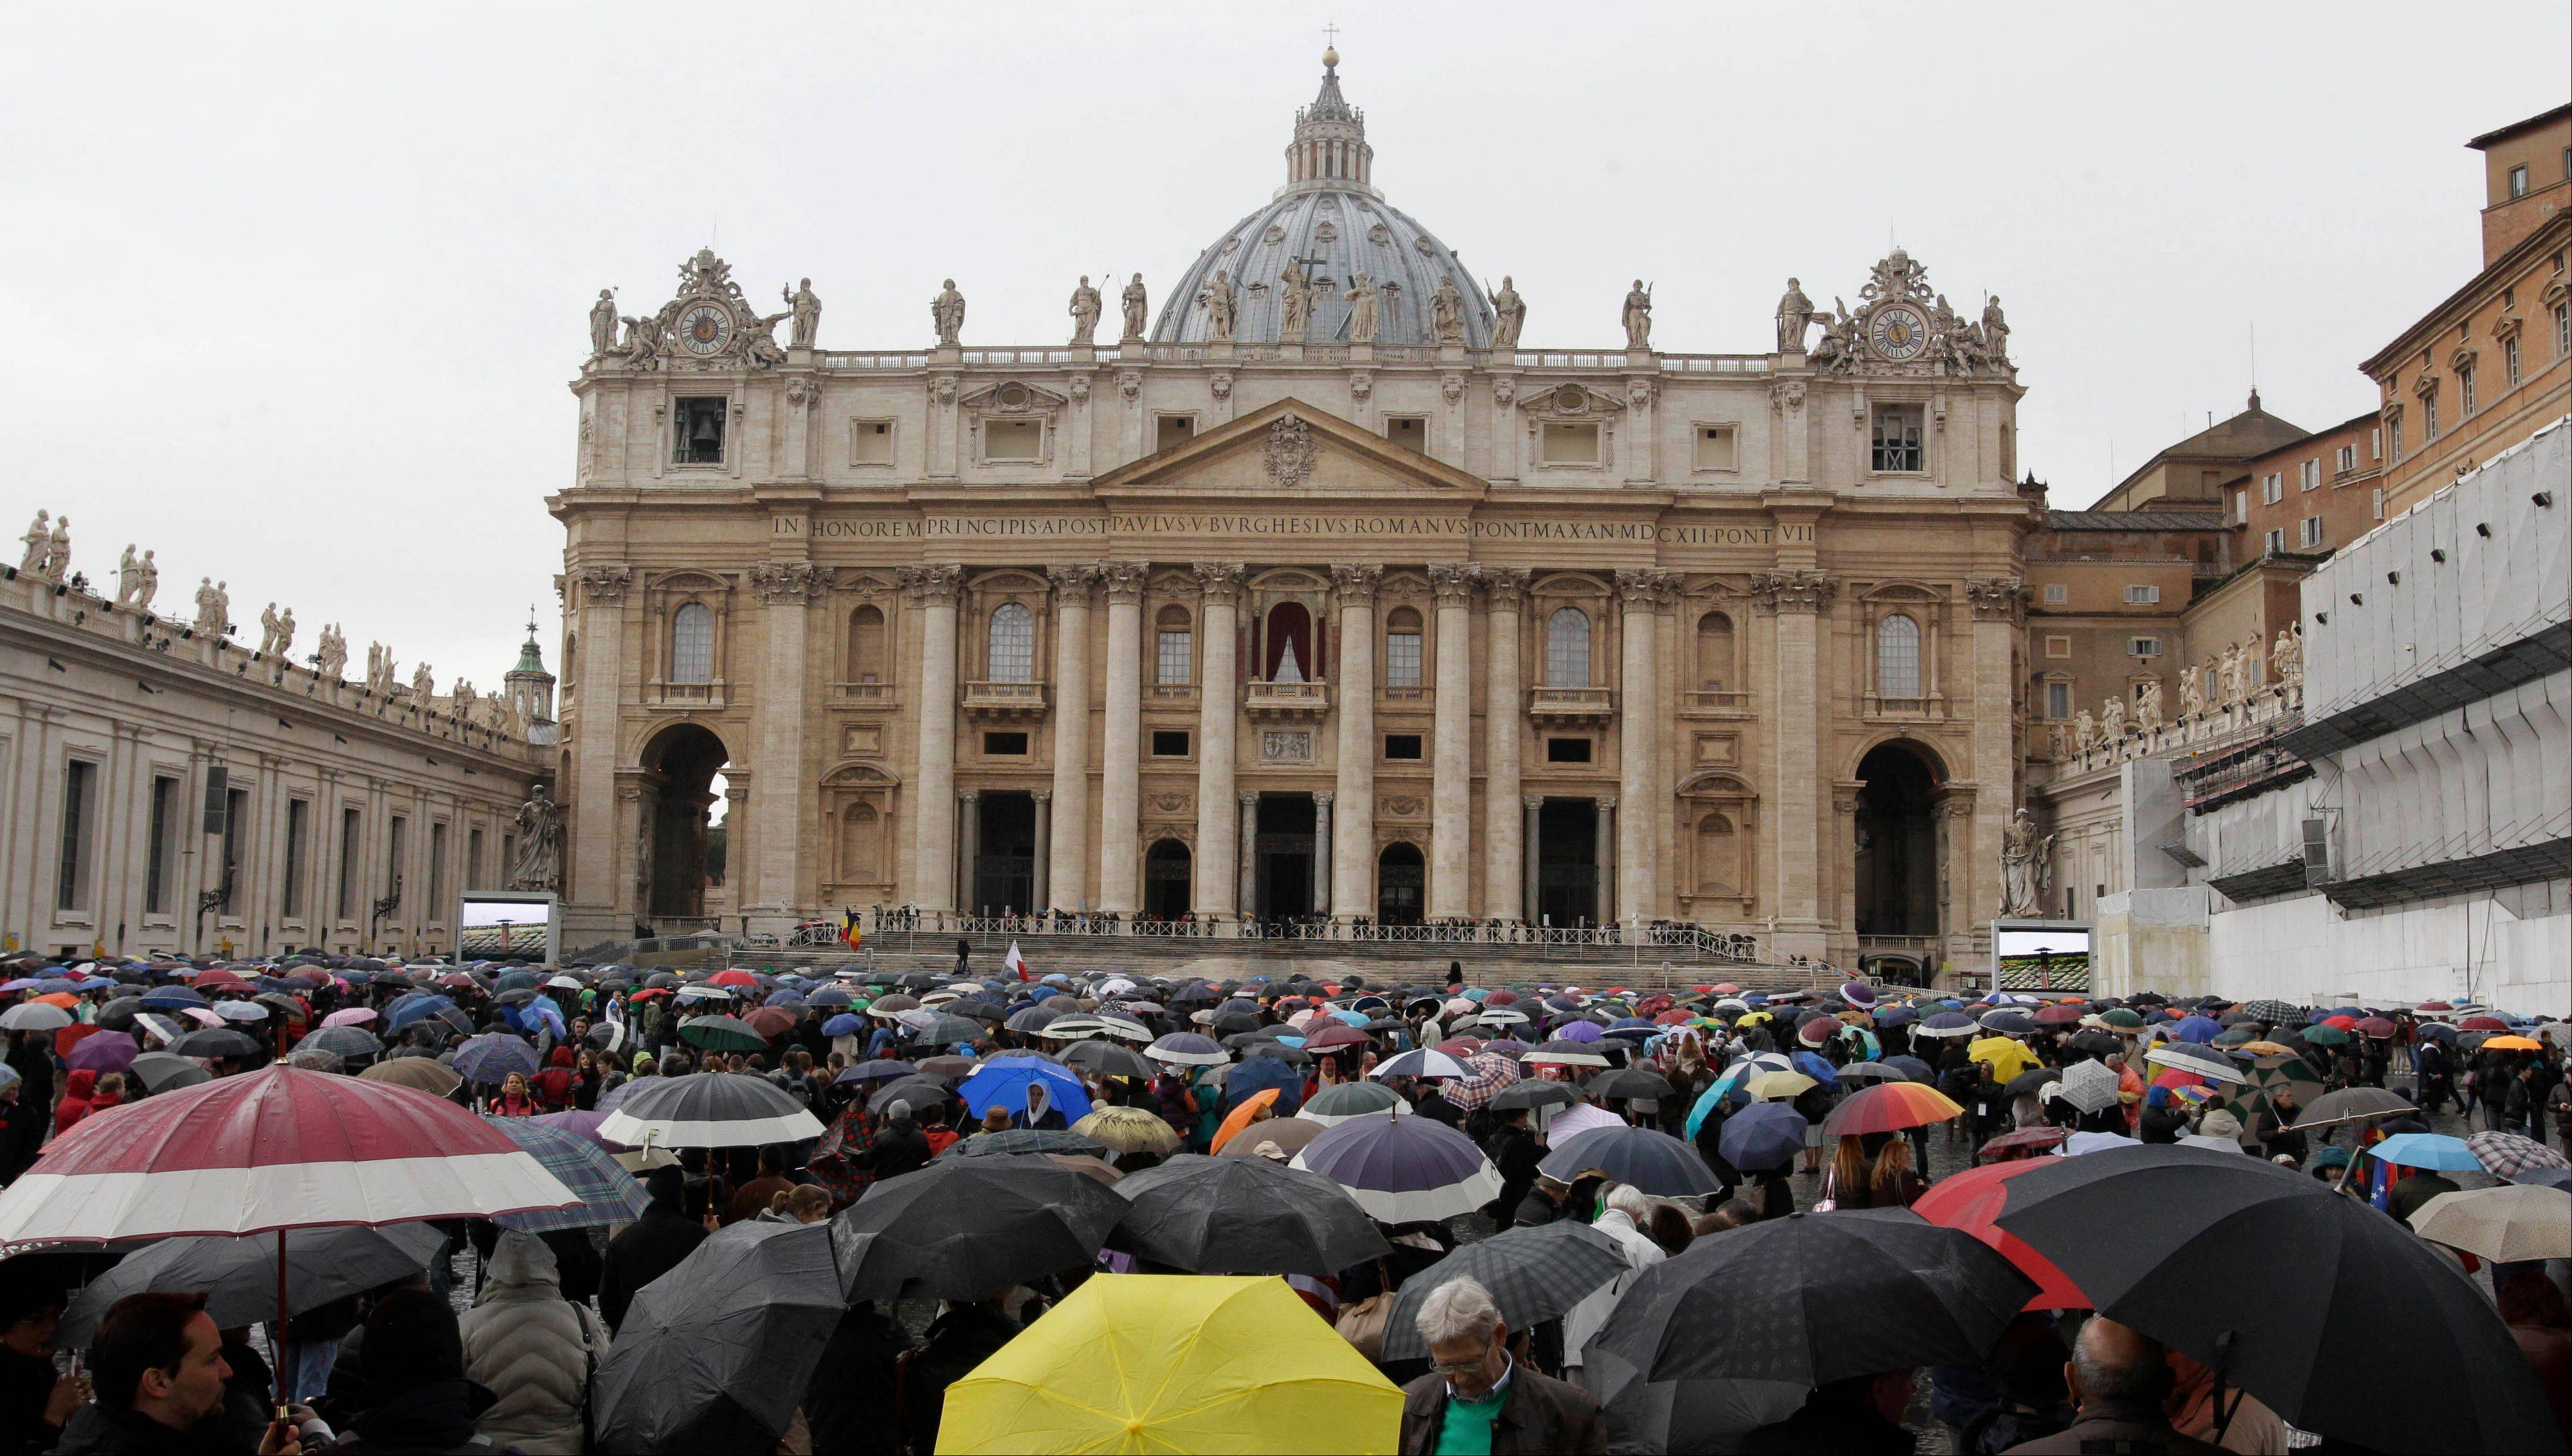 Crowds gather Wednesday in front of St. Peter's Basilica in St. Peter's Square as they wait for smoke from the Sistine Chapel during the second day of the conclave to elect a new pope at the Vatican.